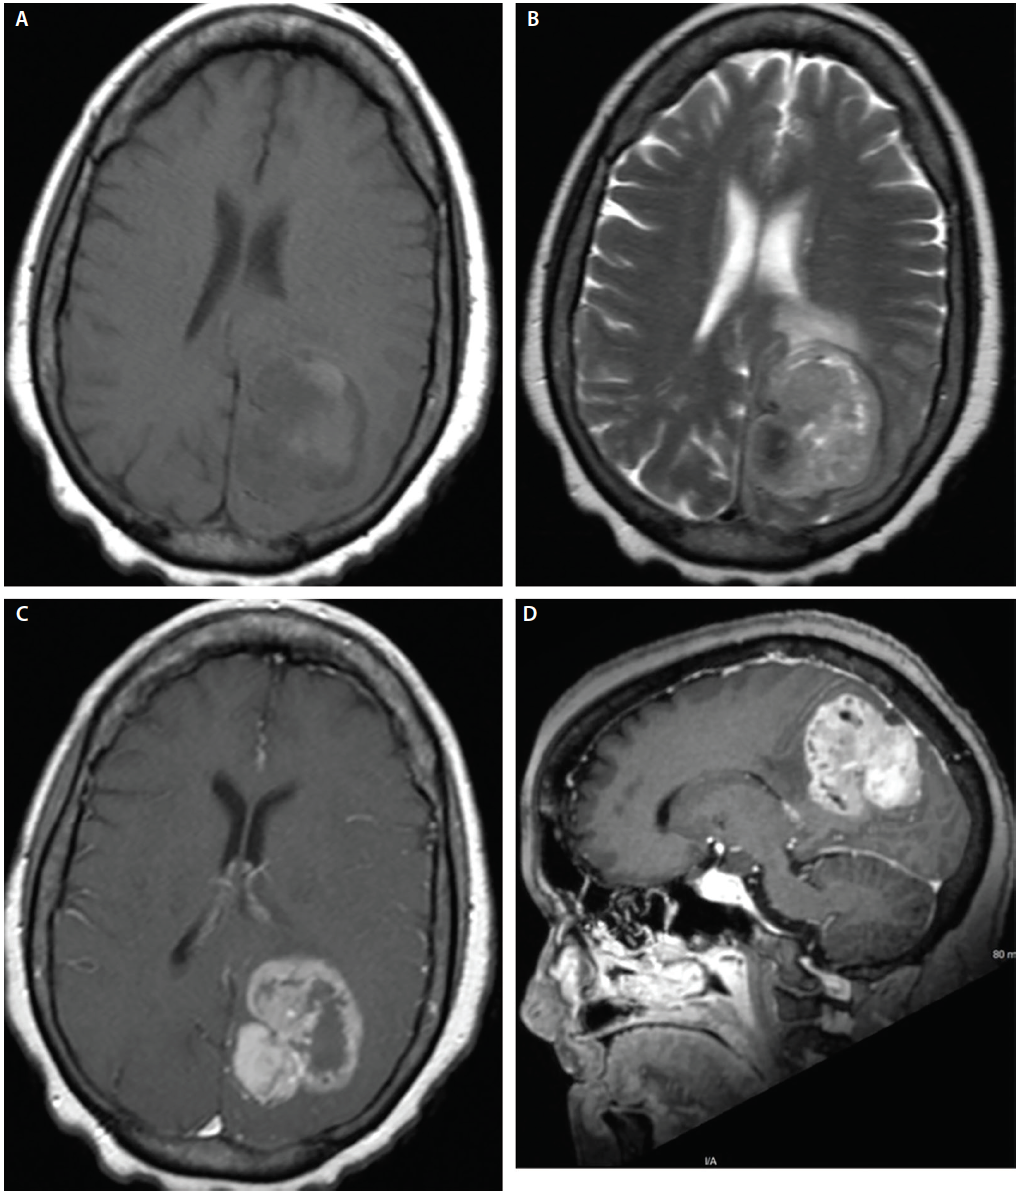 Figure 3:  Images from a woman, age 58, after 3 weeks of progressive right-sided weakness. The MRI reveals an intra-axial T1 isointense (A), T2 heterogenous (B) heterogeneously enhancing mass of the cuneus with surround T2/FLAIR edema surrounding the lesion (C,D). Pathology from surgical resection was consistent with glioblastoma World Health Organization (WHO) grade 4, IDH wild type.